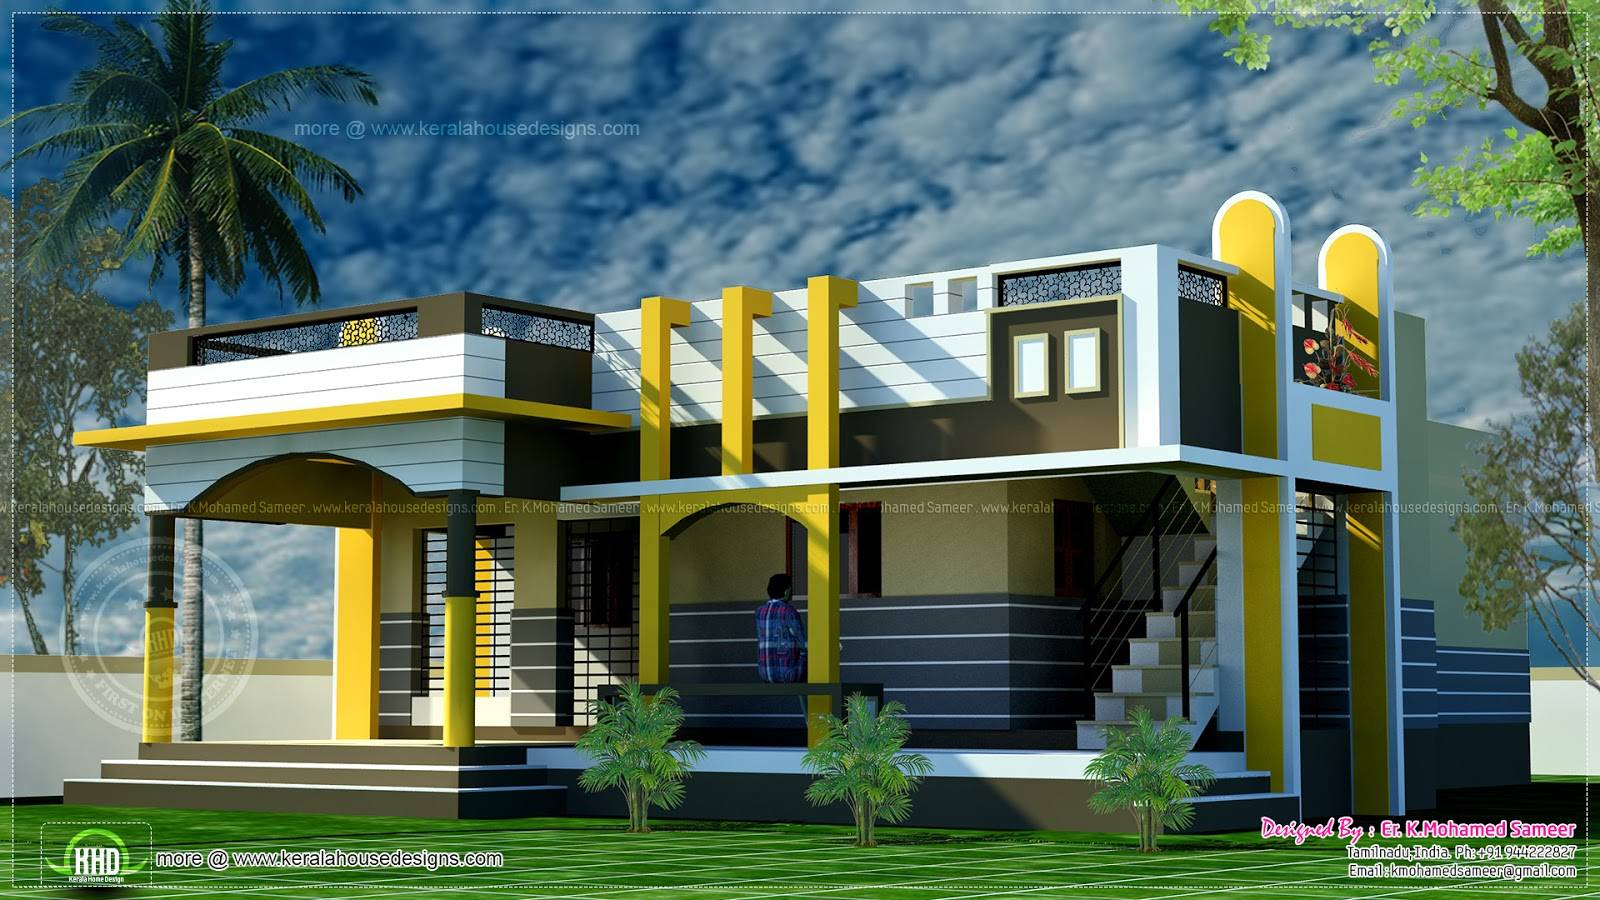 Picture of: Small House Design Contemporary Style Indian Plans House Plans 96872